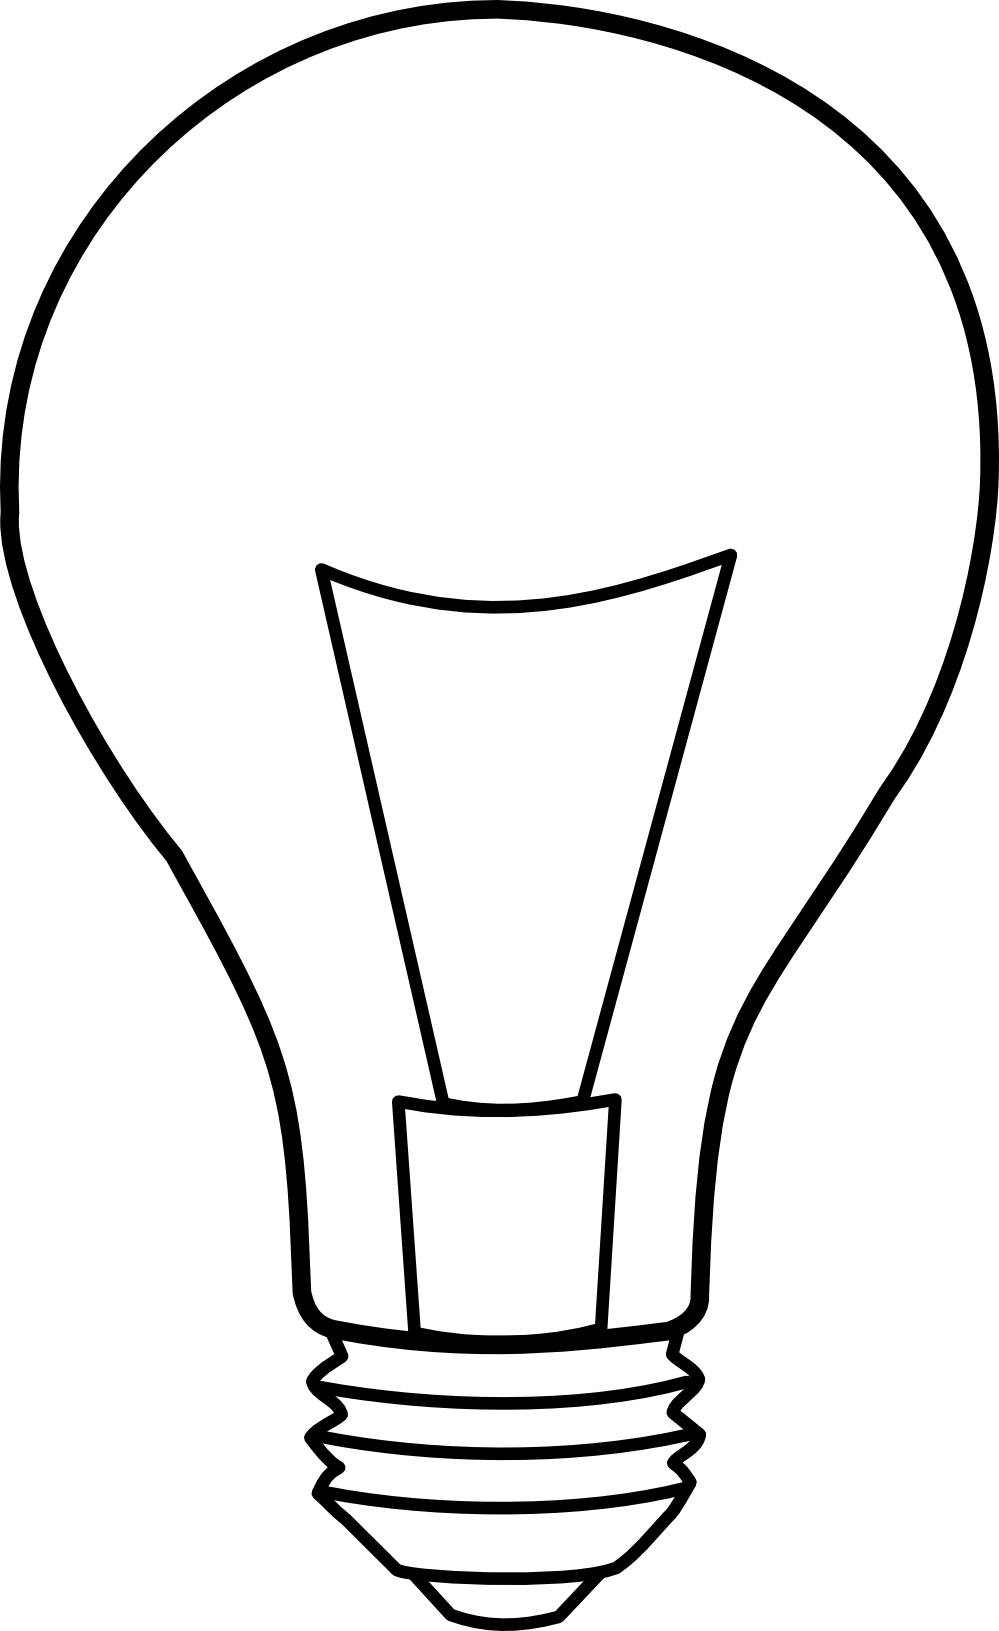 Lightbulb Clipart Black And White | Clipart Panda - Free ...